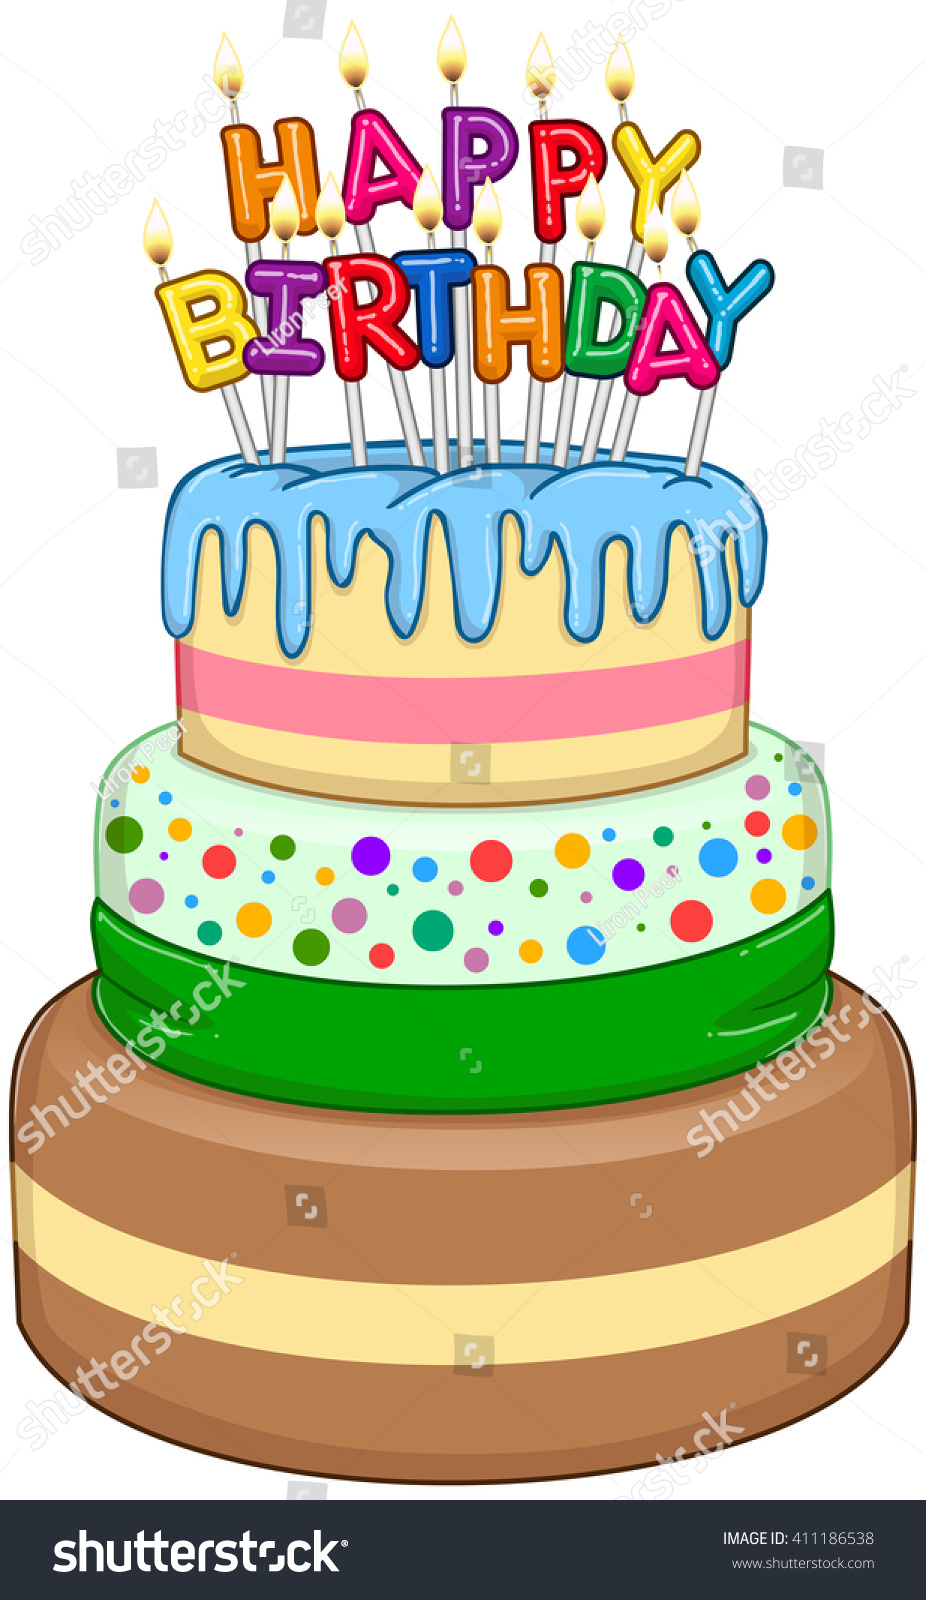 Vector Illustration Of 3 Floors Birthday Cake With Happy Text And Candles On Top